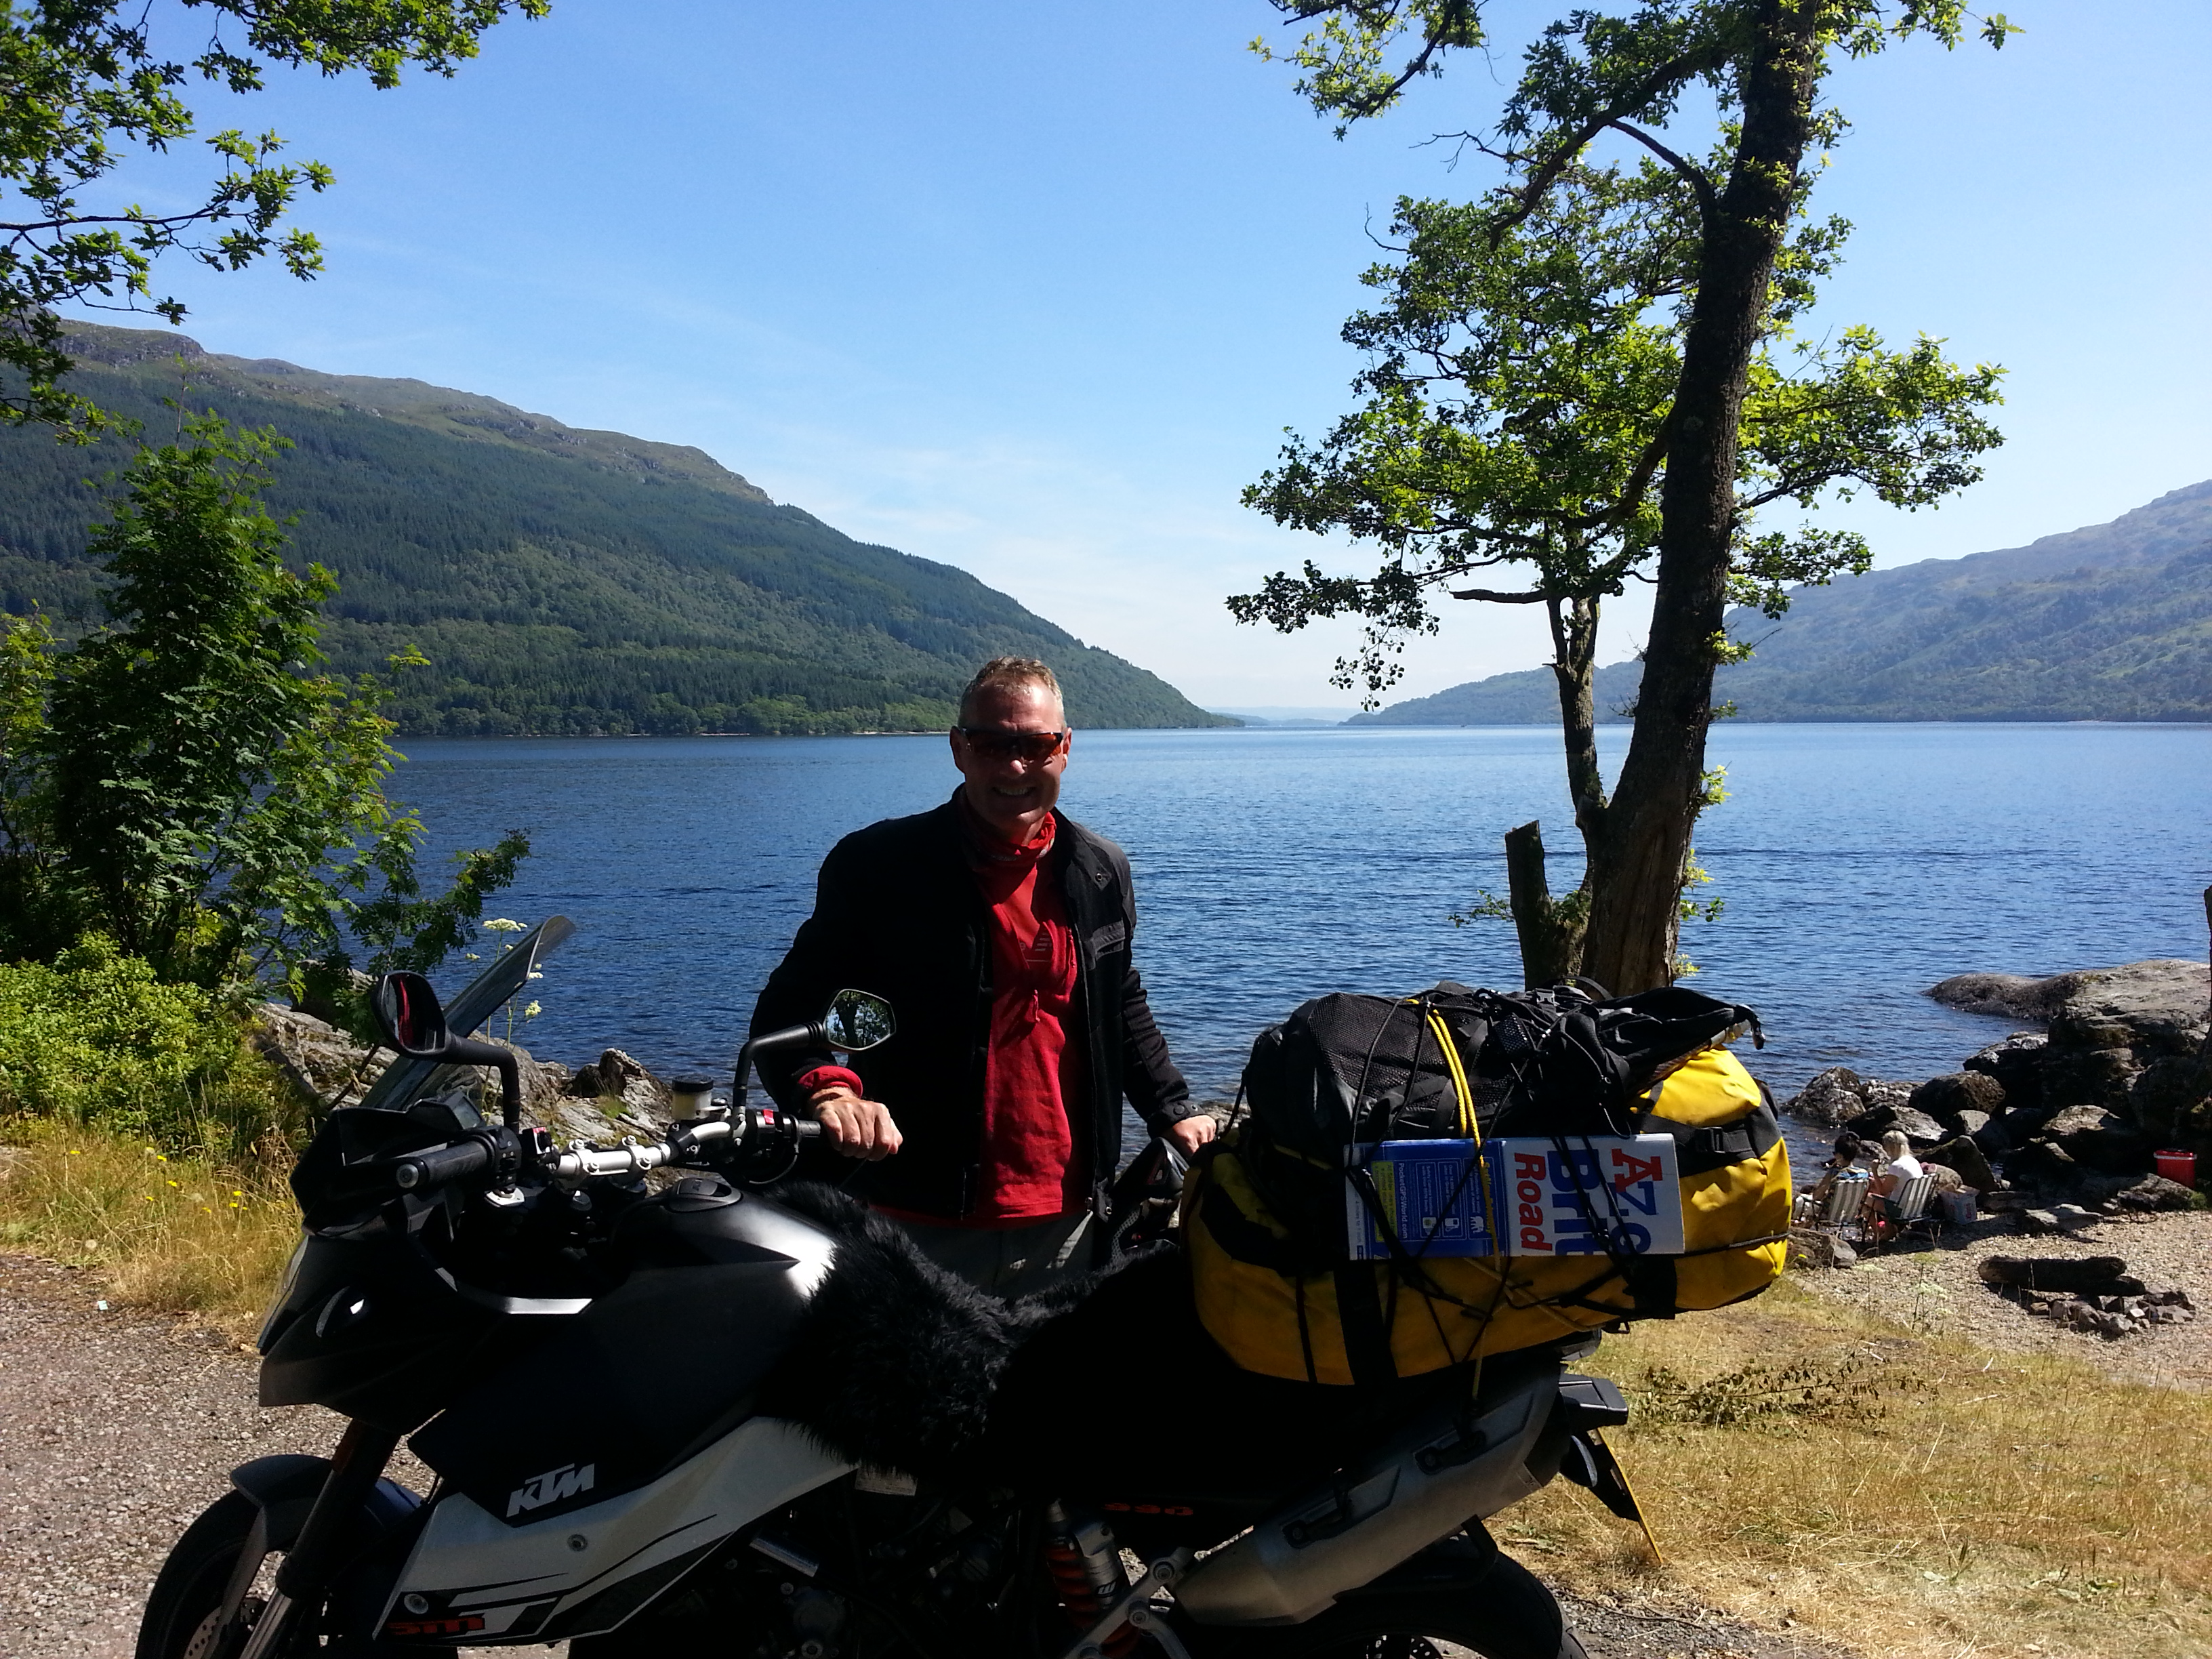 From the Lakes I rode to Scotland and passed Glasgow to Loch Lomond